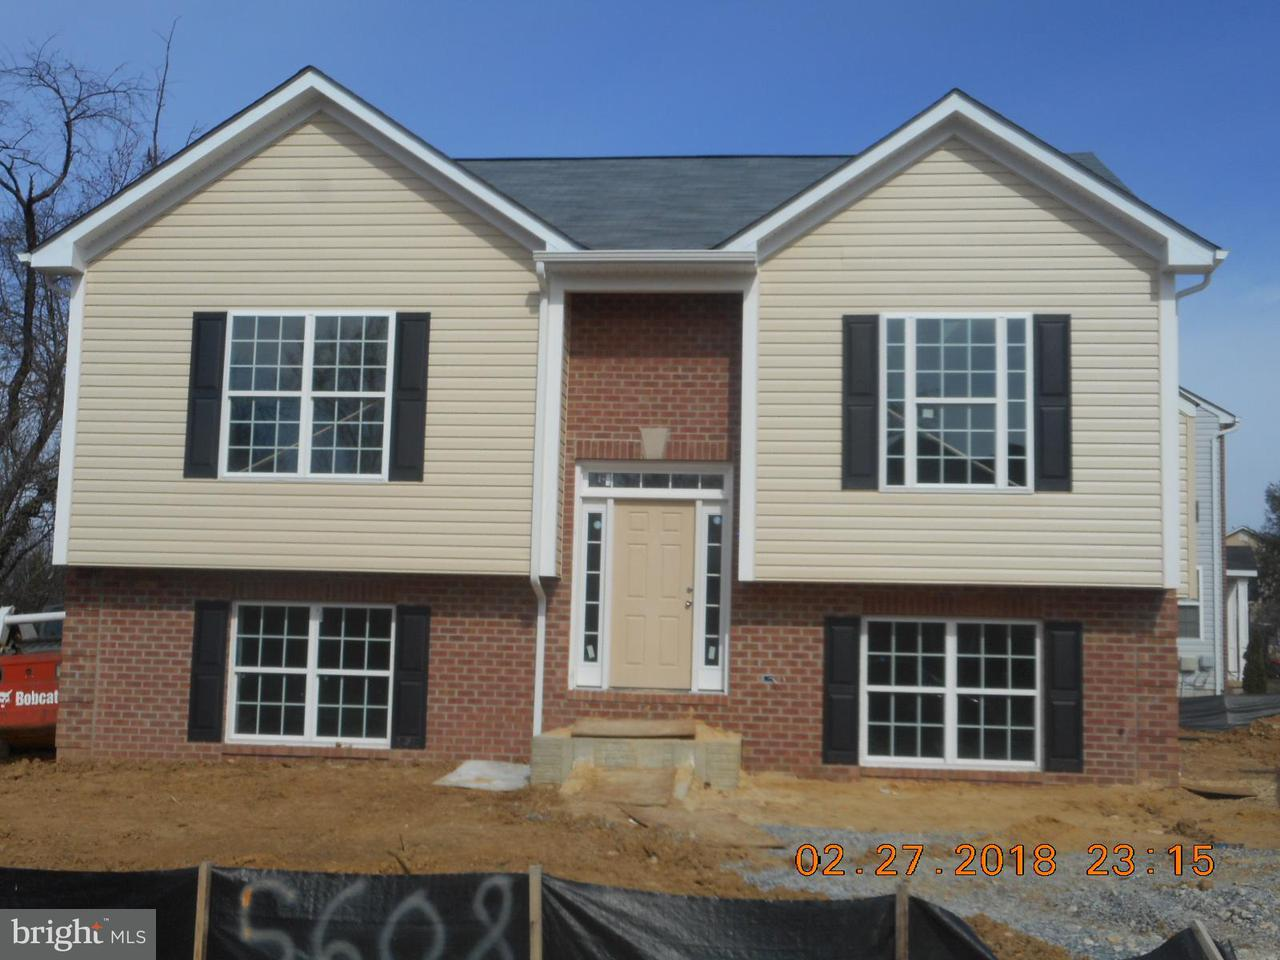 5608 Rugged Lane Capitol Heights, MD 20743